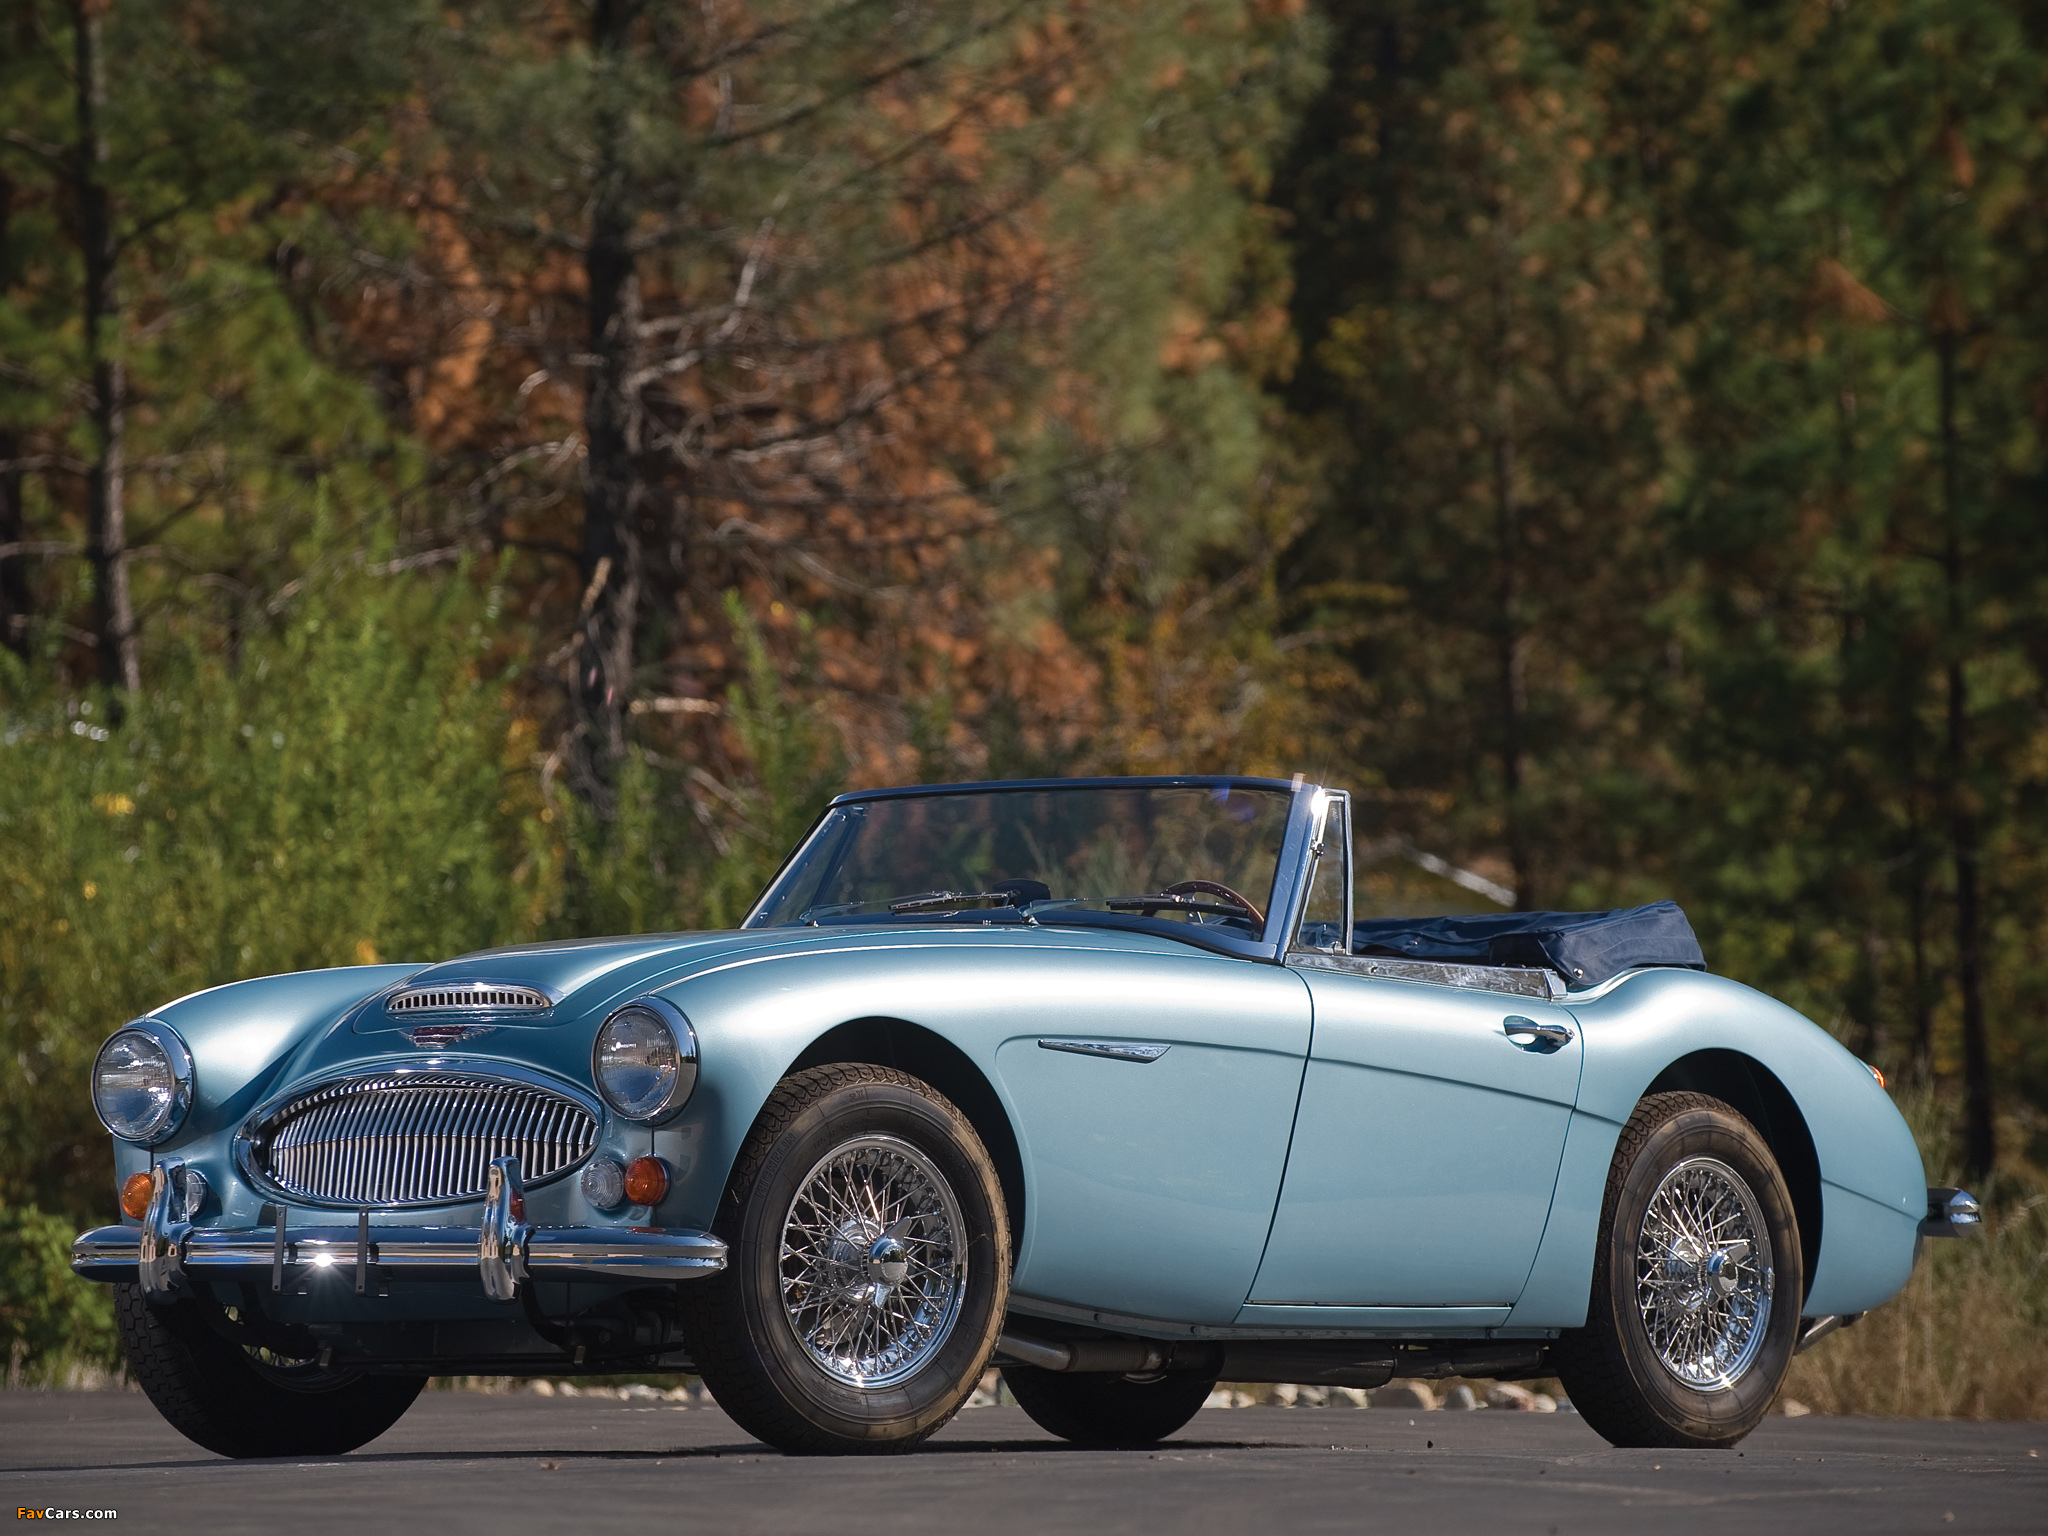 Austin Healey 3000  MkIII  1964   68 pictures  2048x1536  Austin Healey 3000  MkIII  1964   68 pictures  2048 x 1536